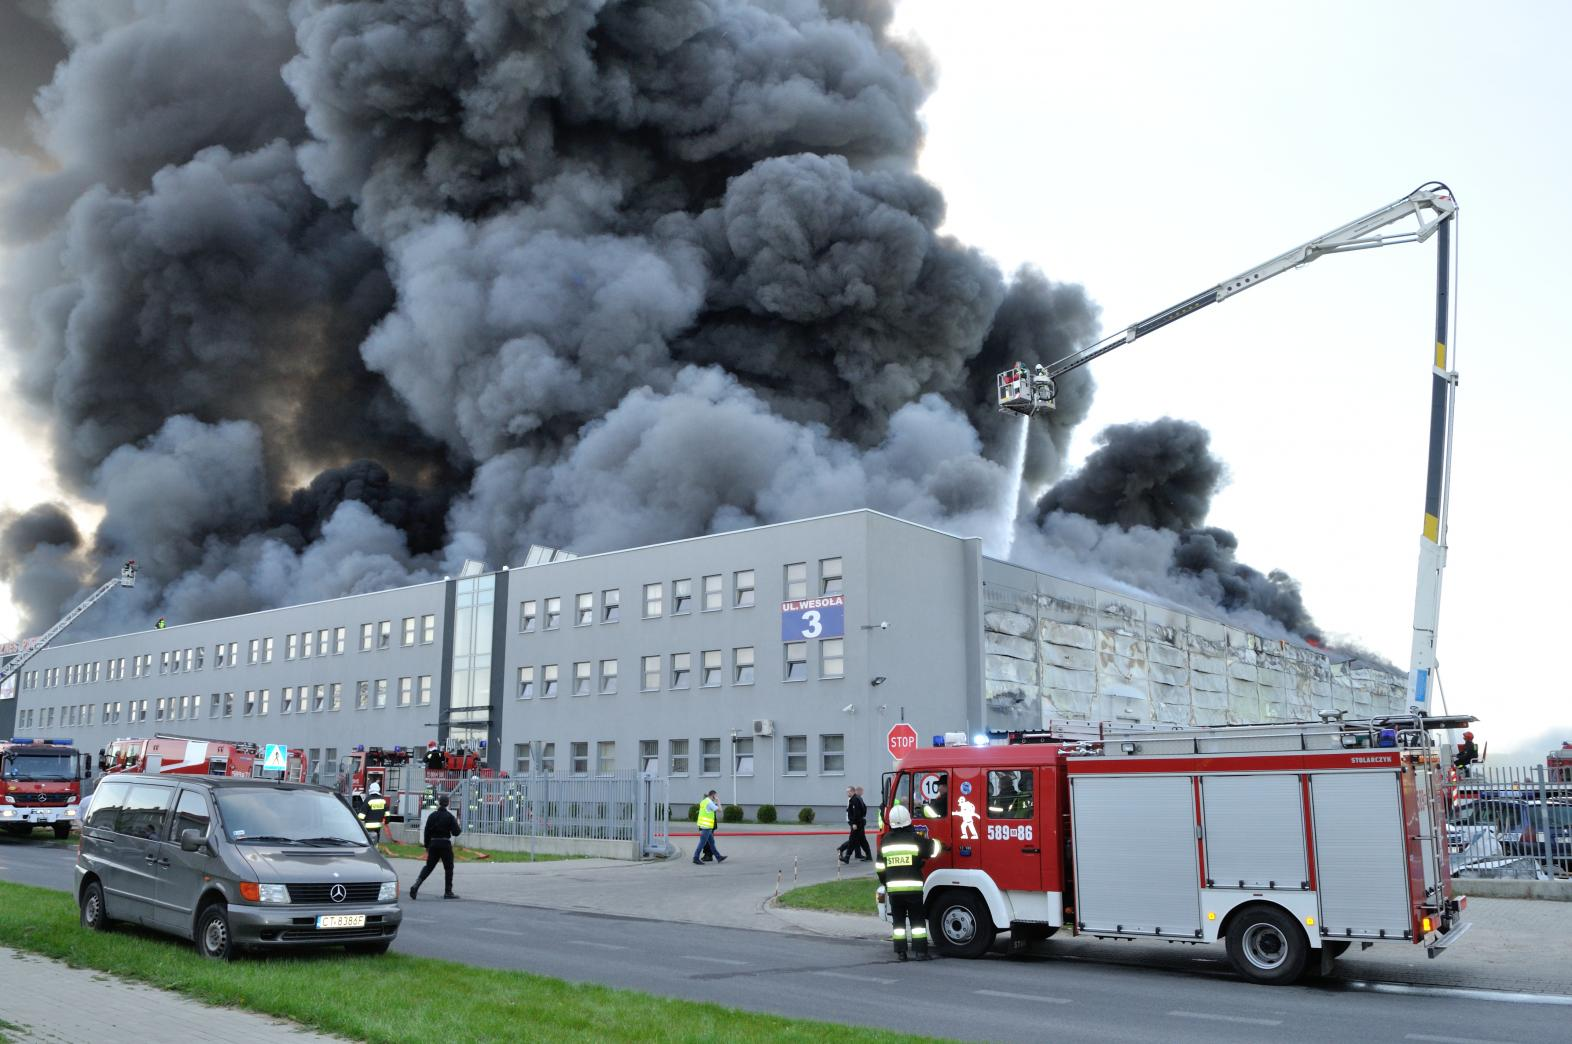 Firefighting crews battle a storehouse fire in Europe